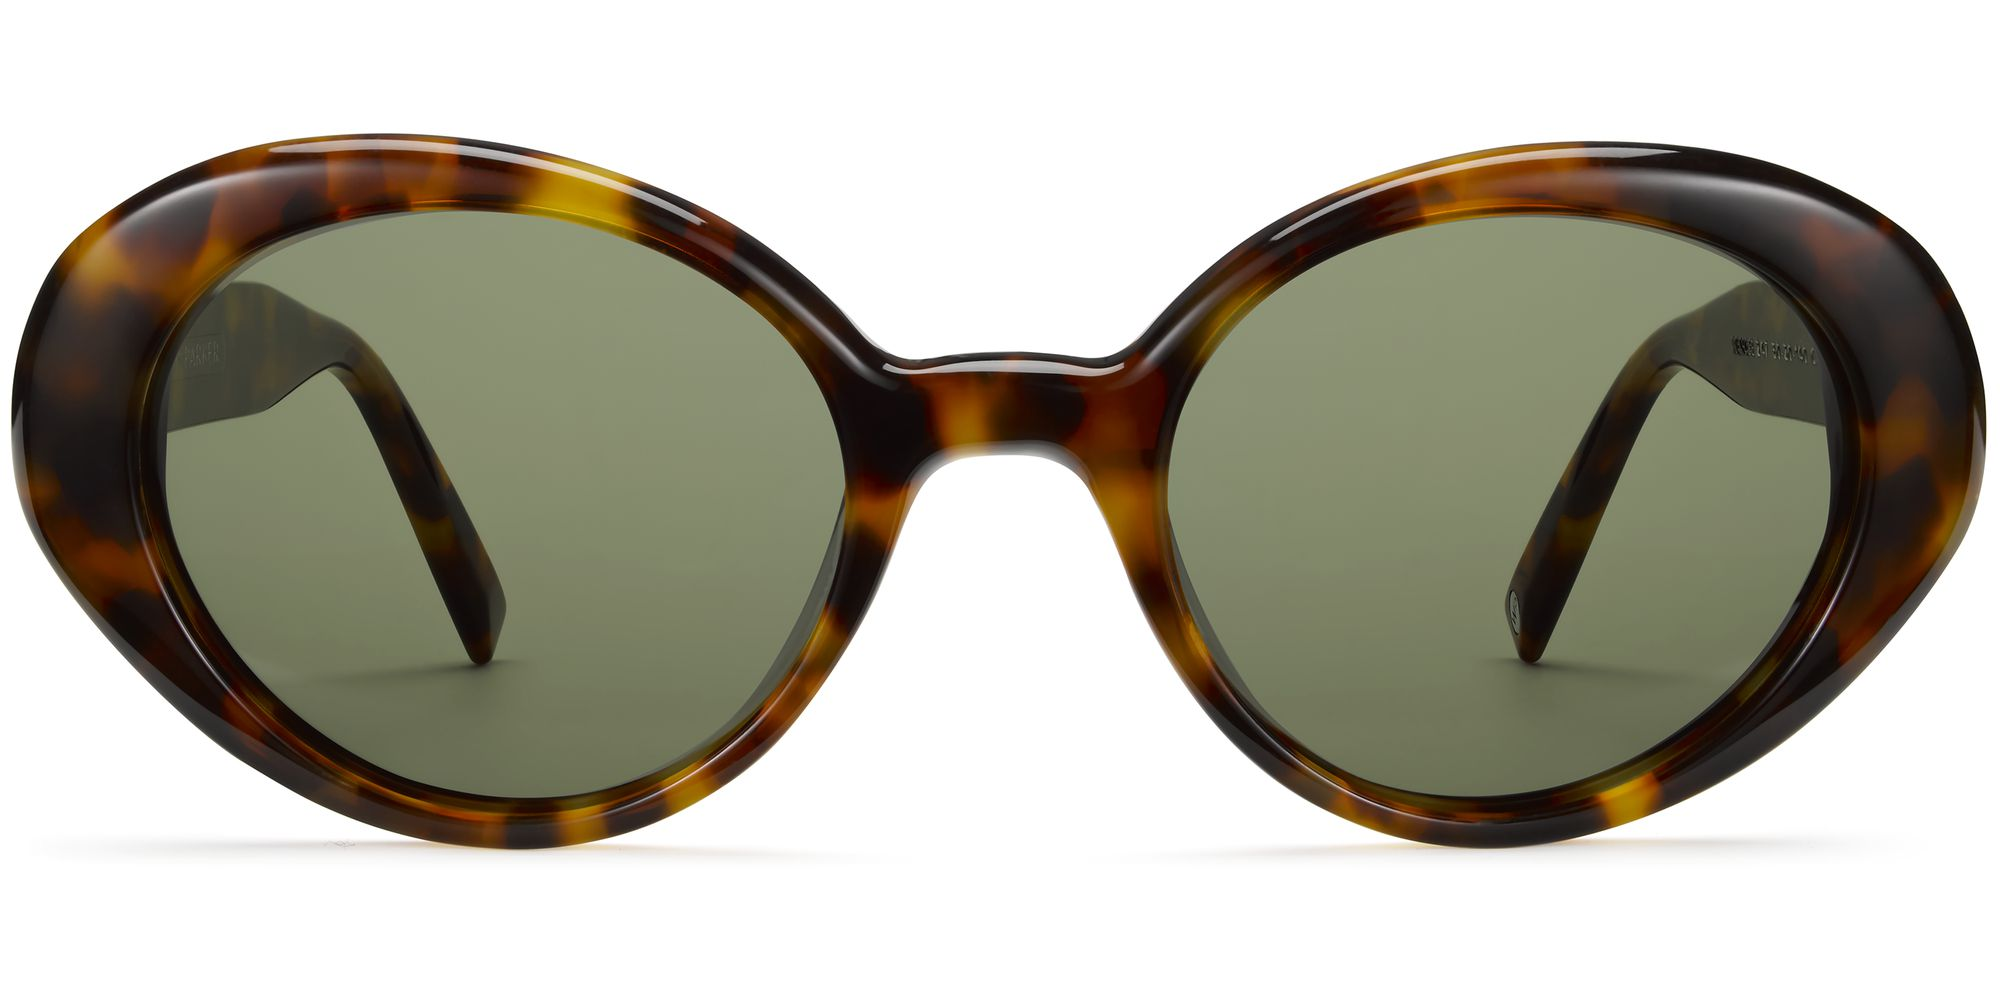 8b43f409 Prescription Favorite Warby Our Parker Sunglasses Non And Y76yfgb